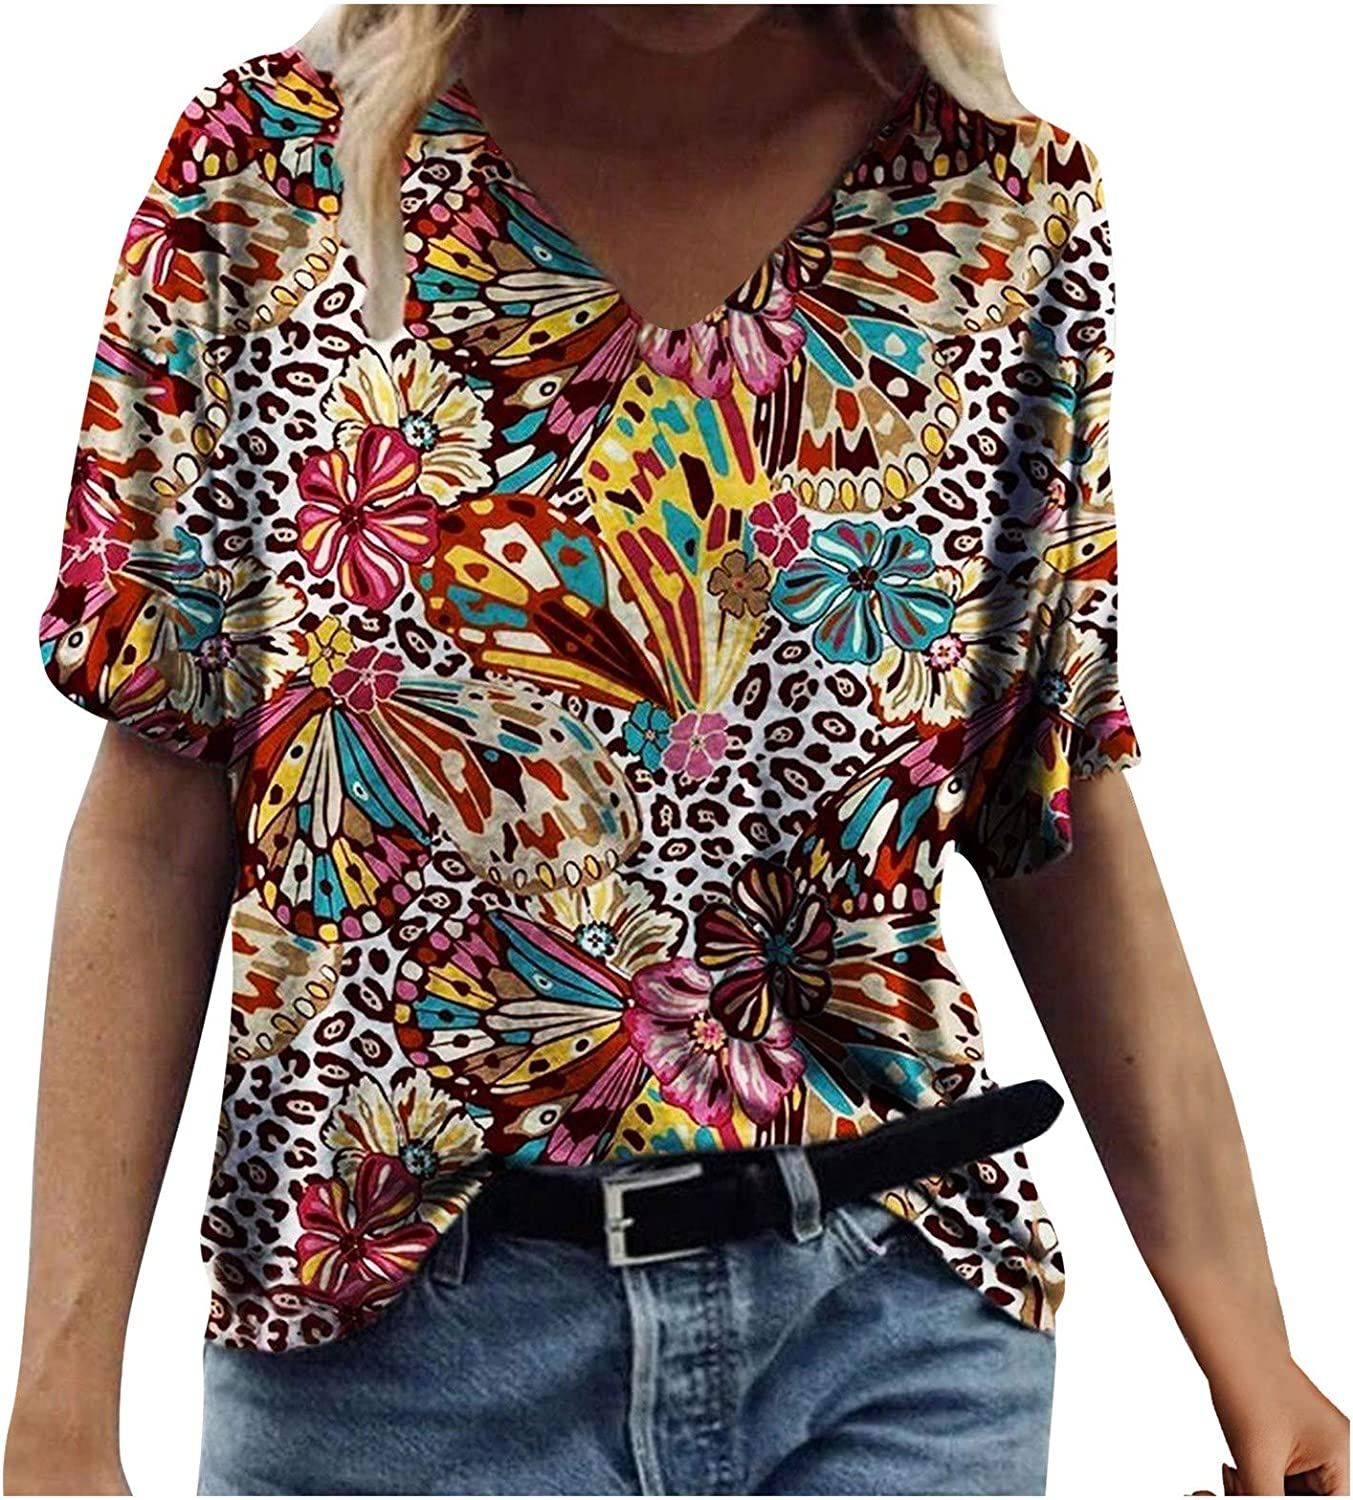 Women's Summer Max 77% OFF Fashion Casual Loose Fit Neck P V Flower Super beauty product restock quality top Colorful